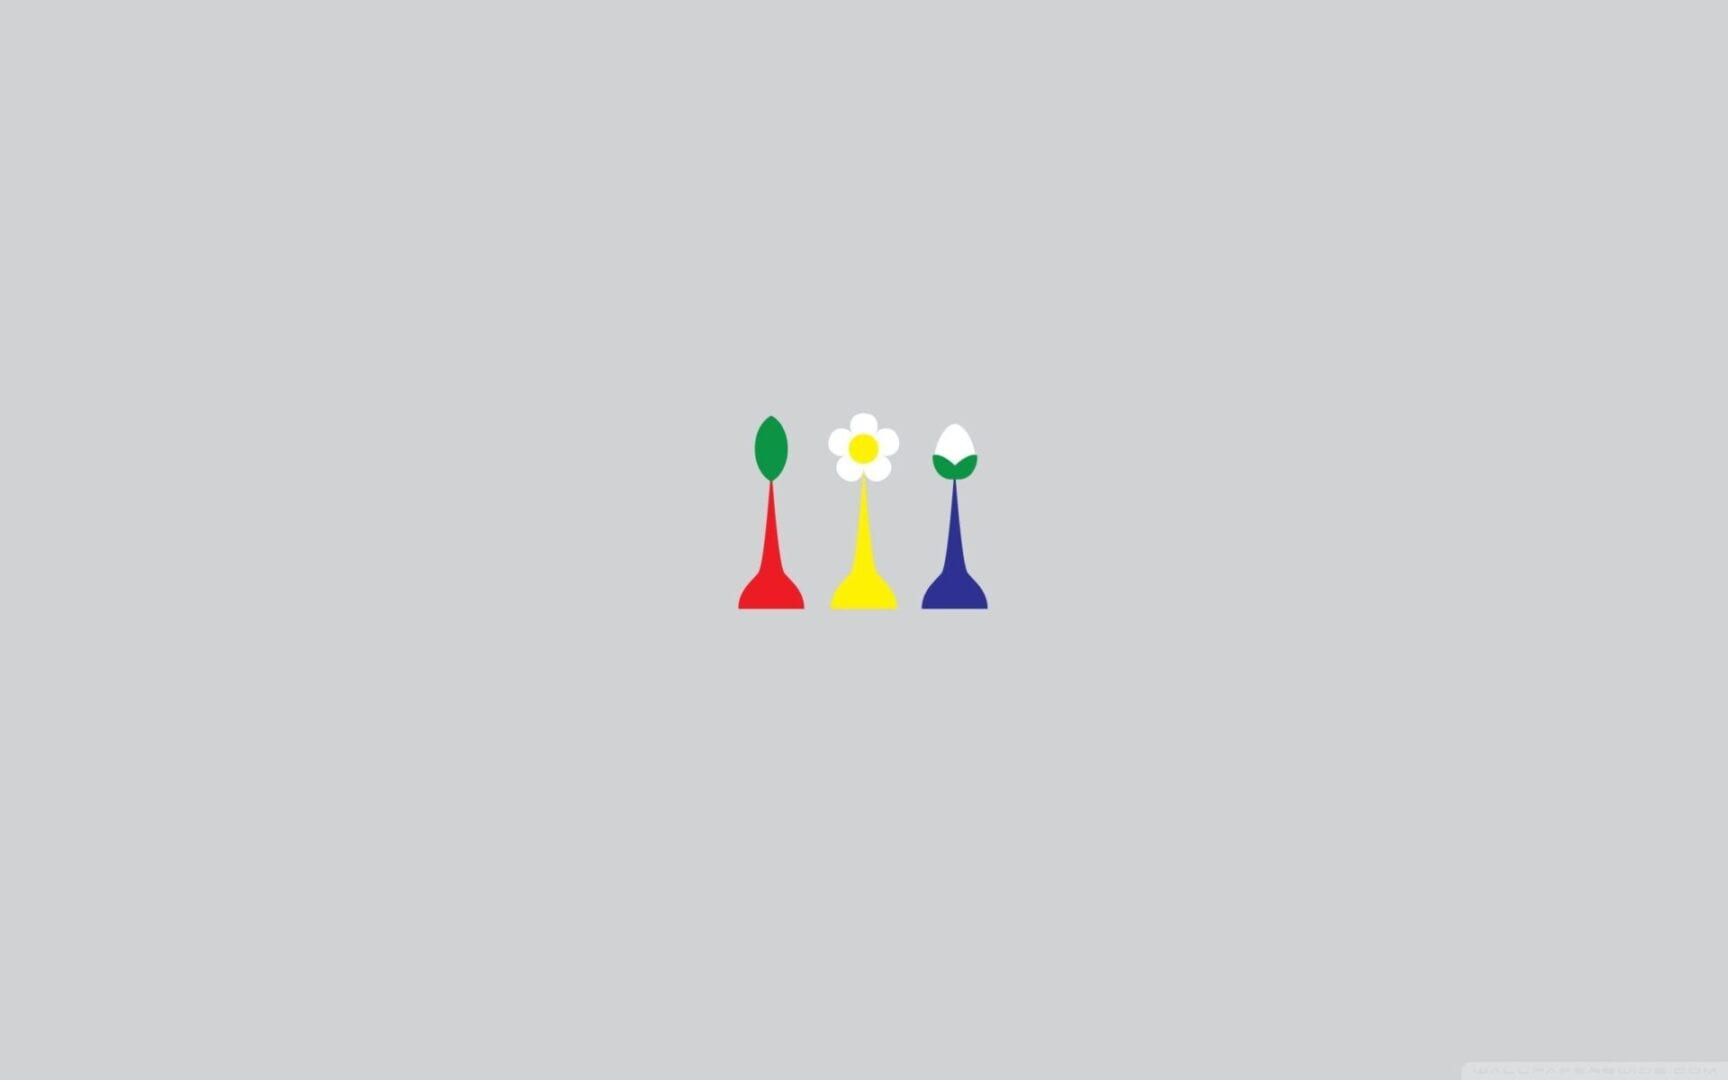 Finest Pikmin Wallpapers for the Good Desktop Background 1